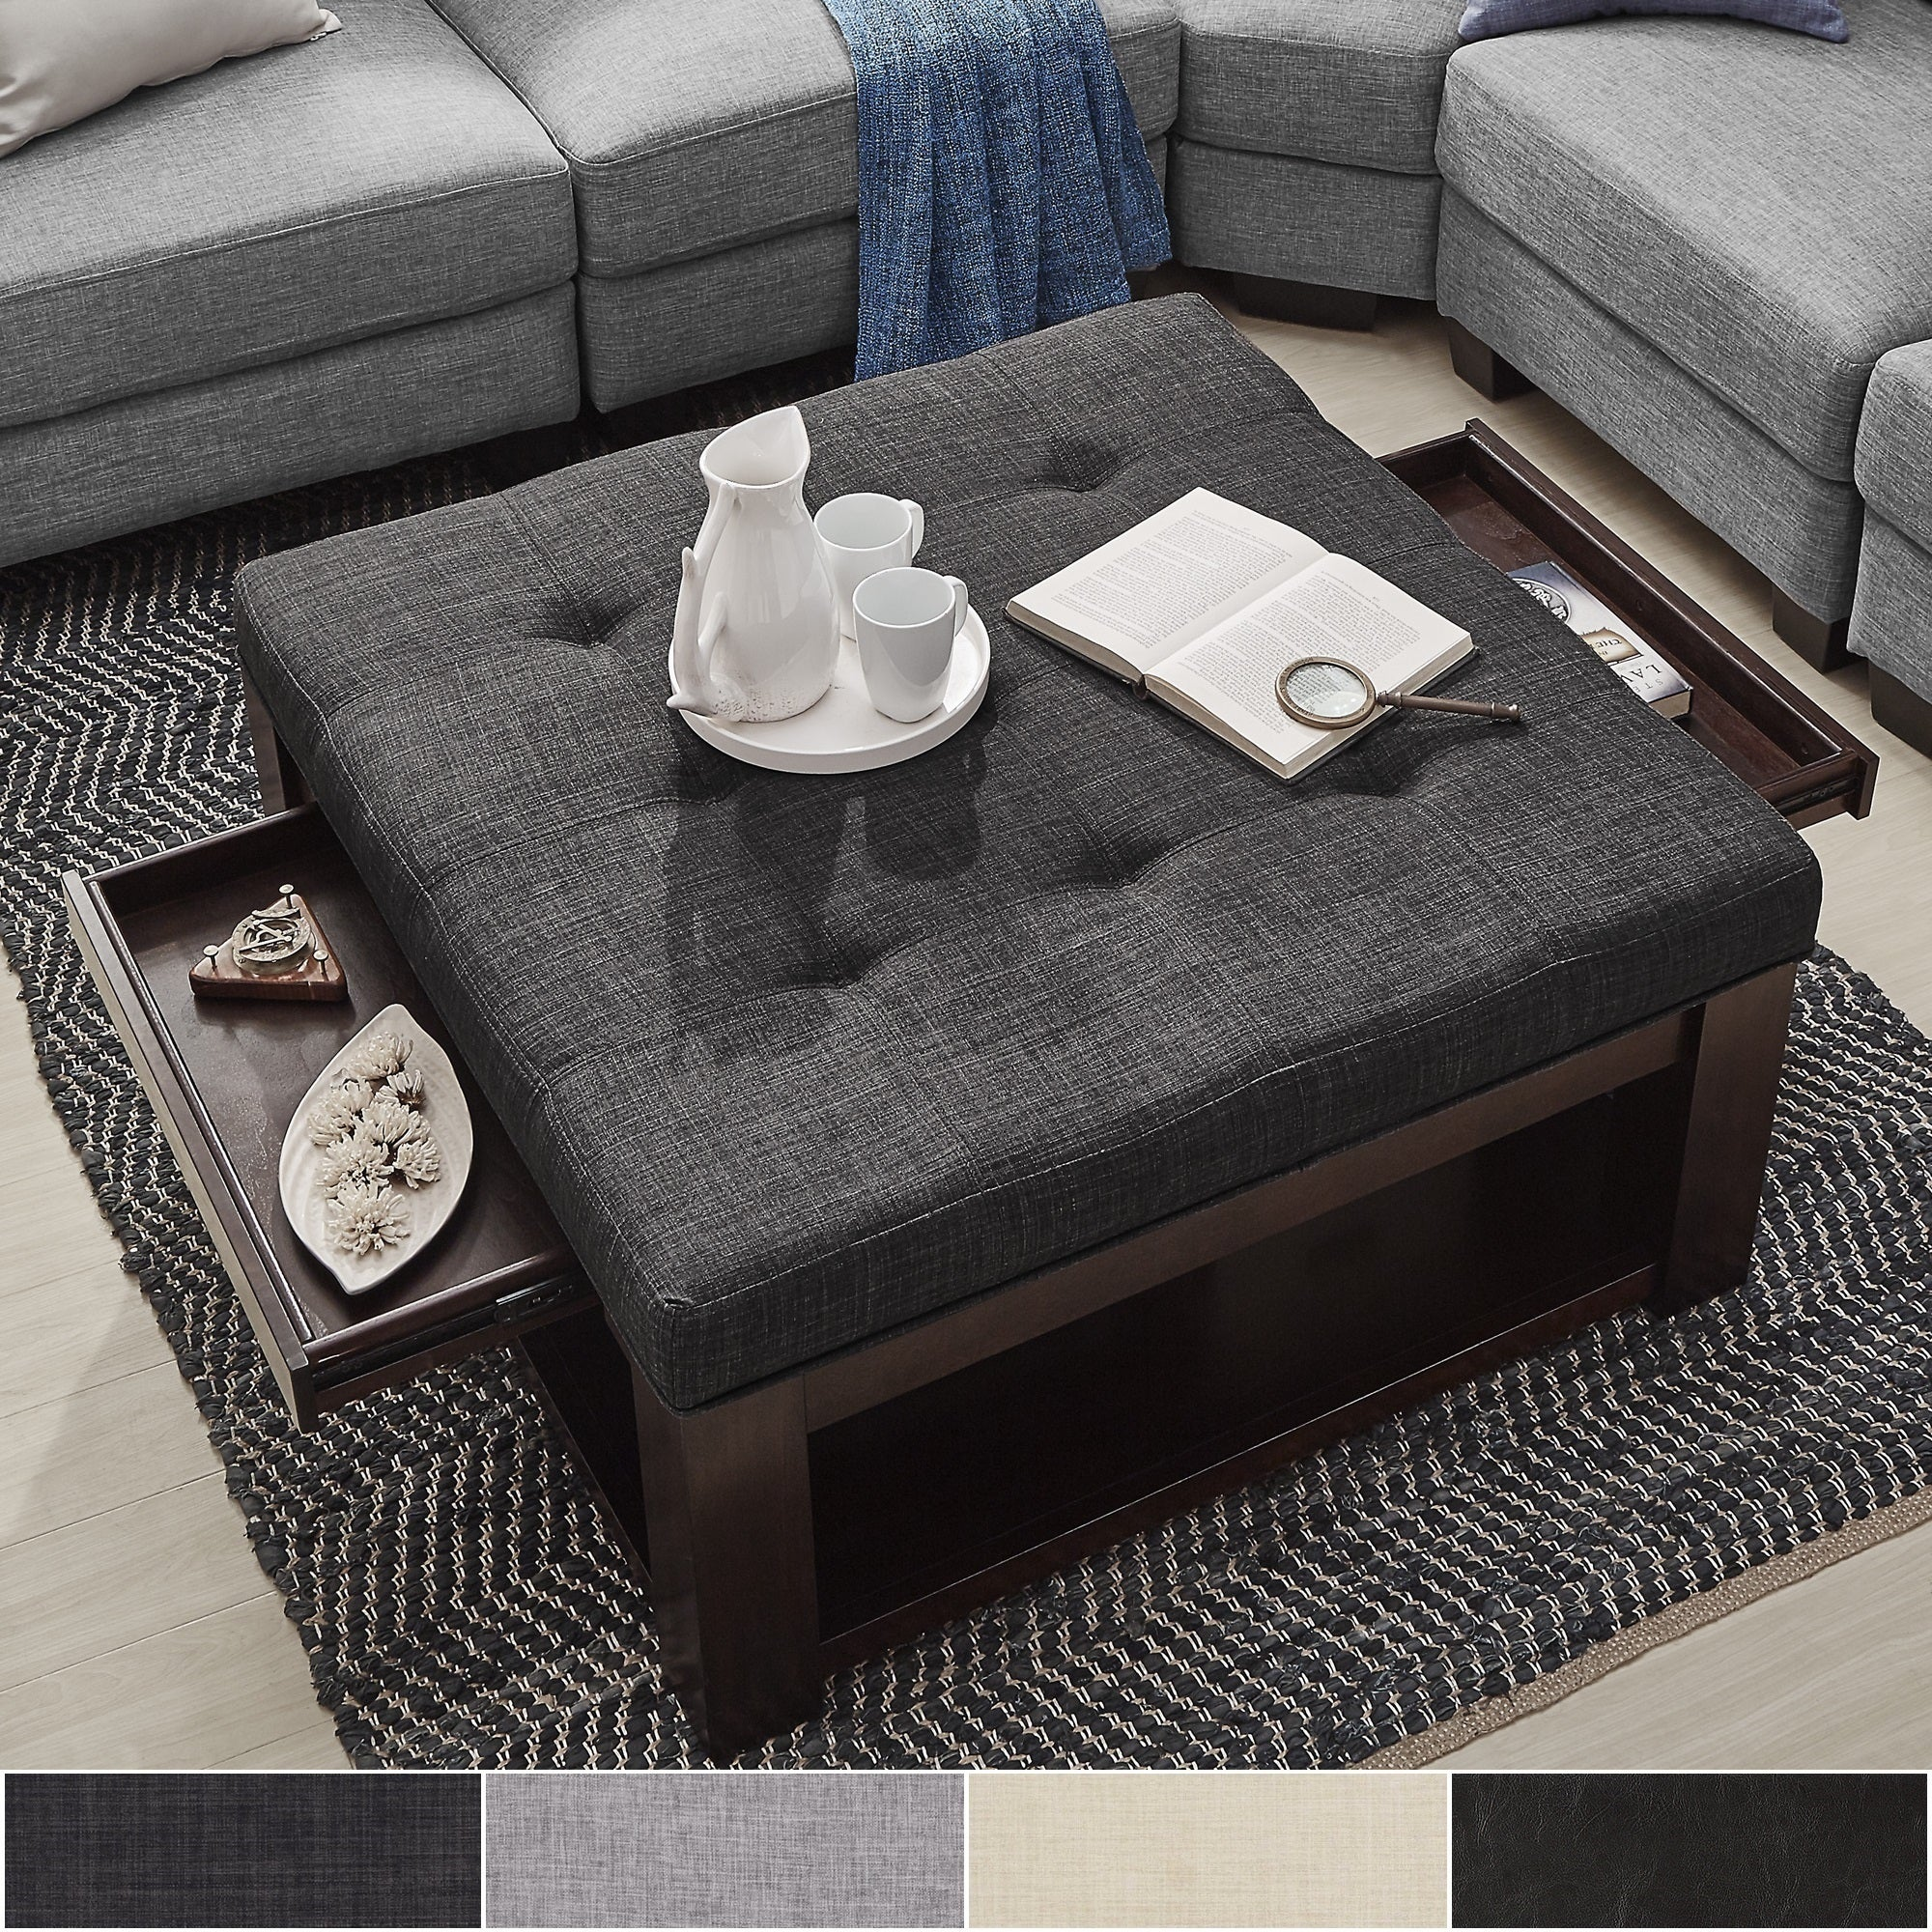 Shop lennon espresso square storage ottoman coffee table by inspire shop lennon espresso square storage ottoman coffee table by inspire q classic on sale free shipping today overstock 13447191 watchthetrailerfo